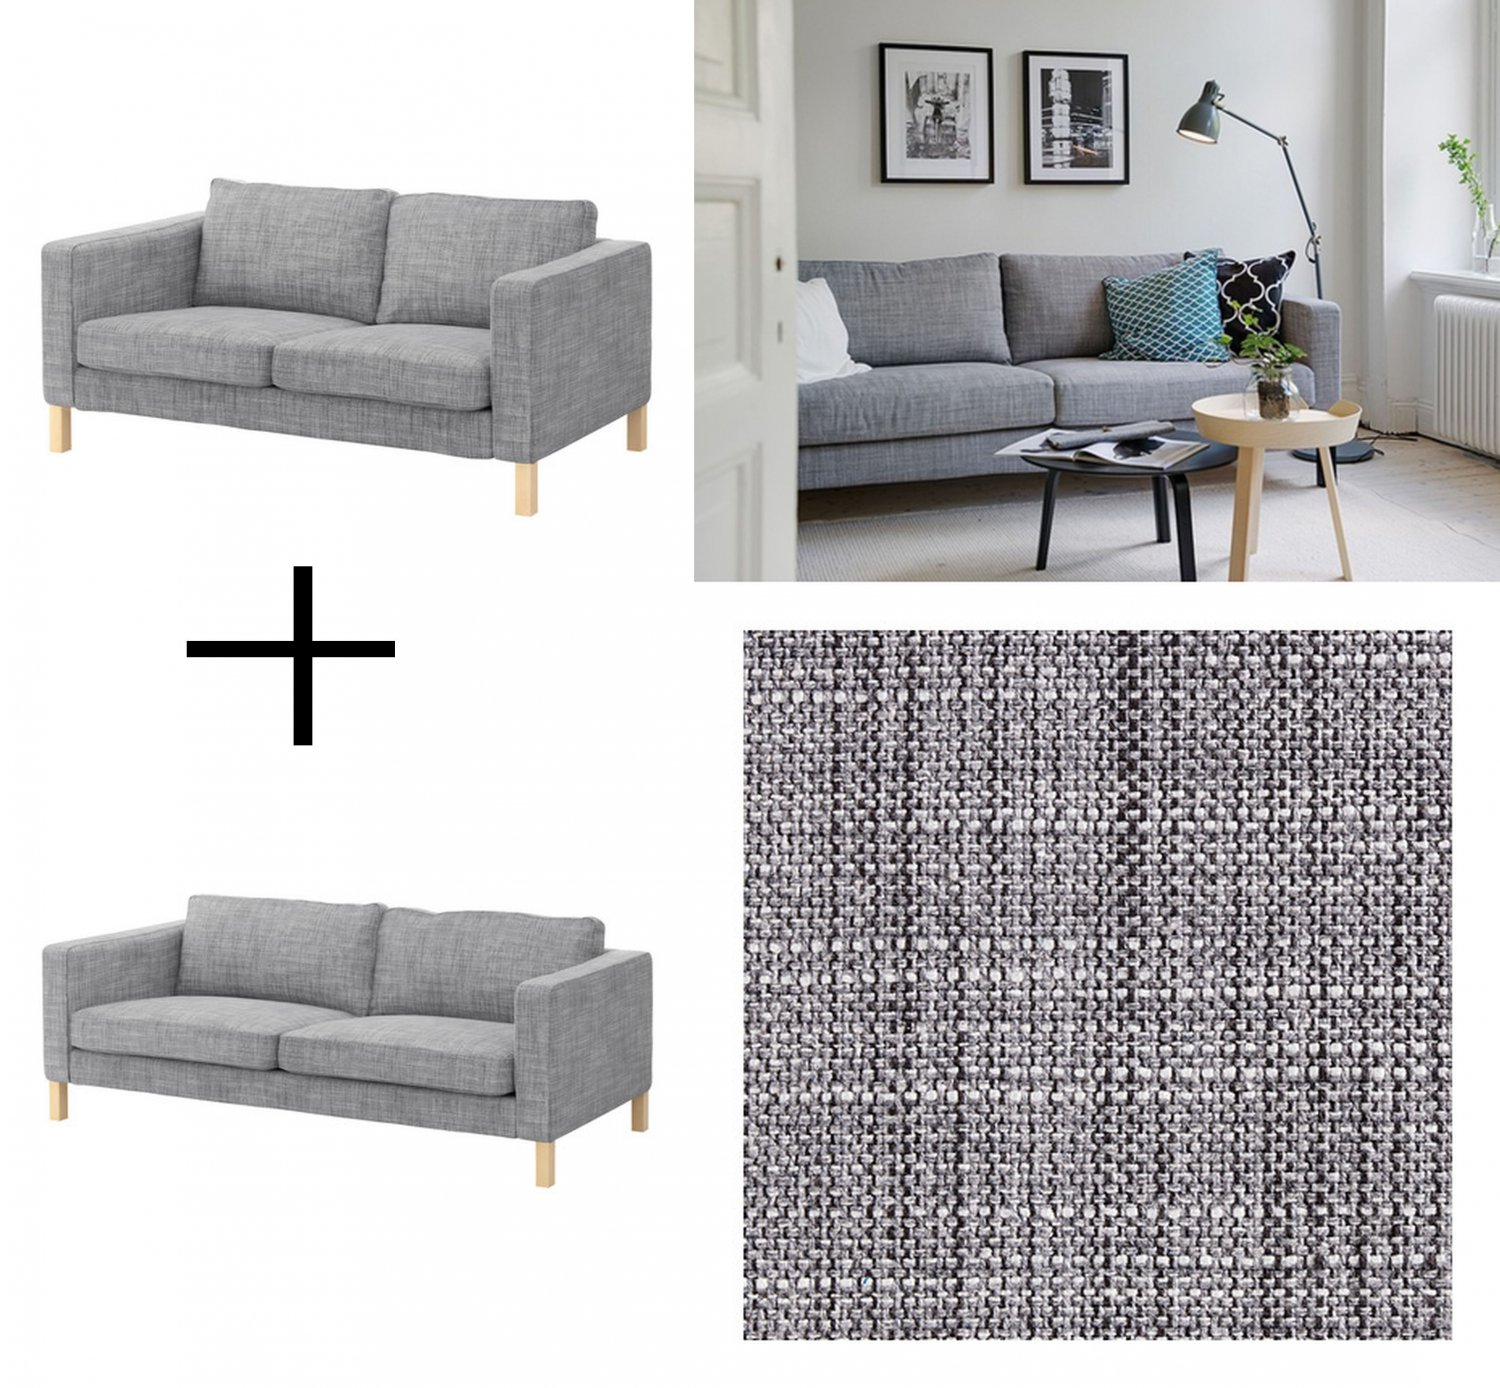 Ikea Karlstad Sofa And Loveseat Slipcover Cover Isunda Gray Grey Linen Blend 2 And 3 Seat